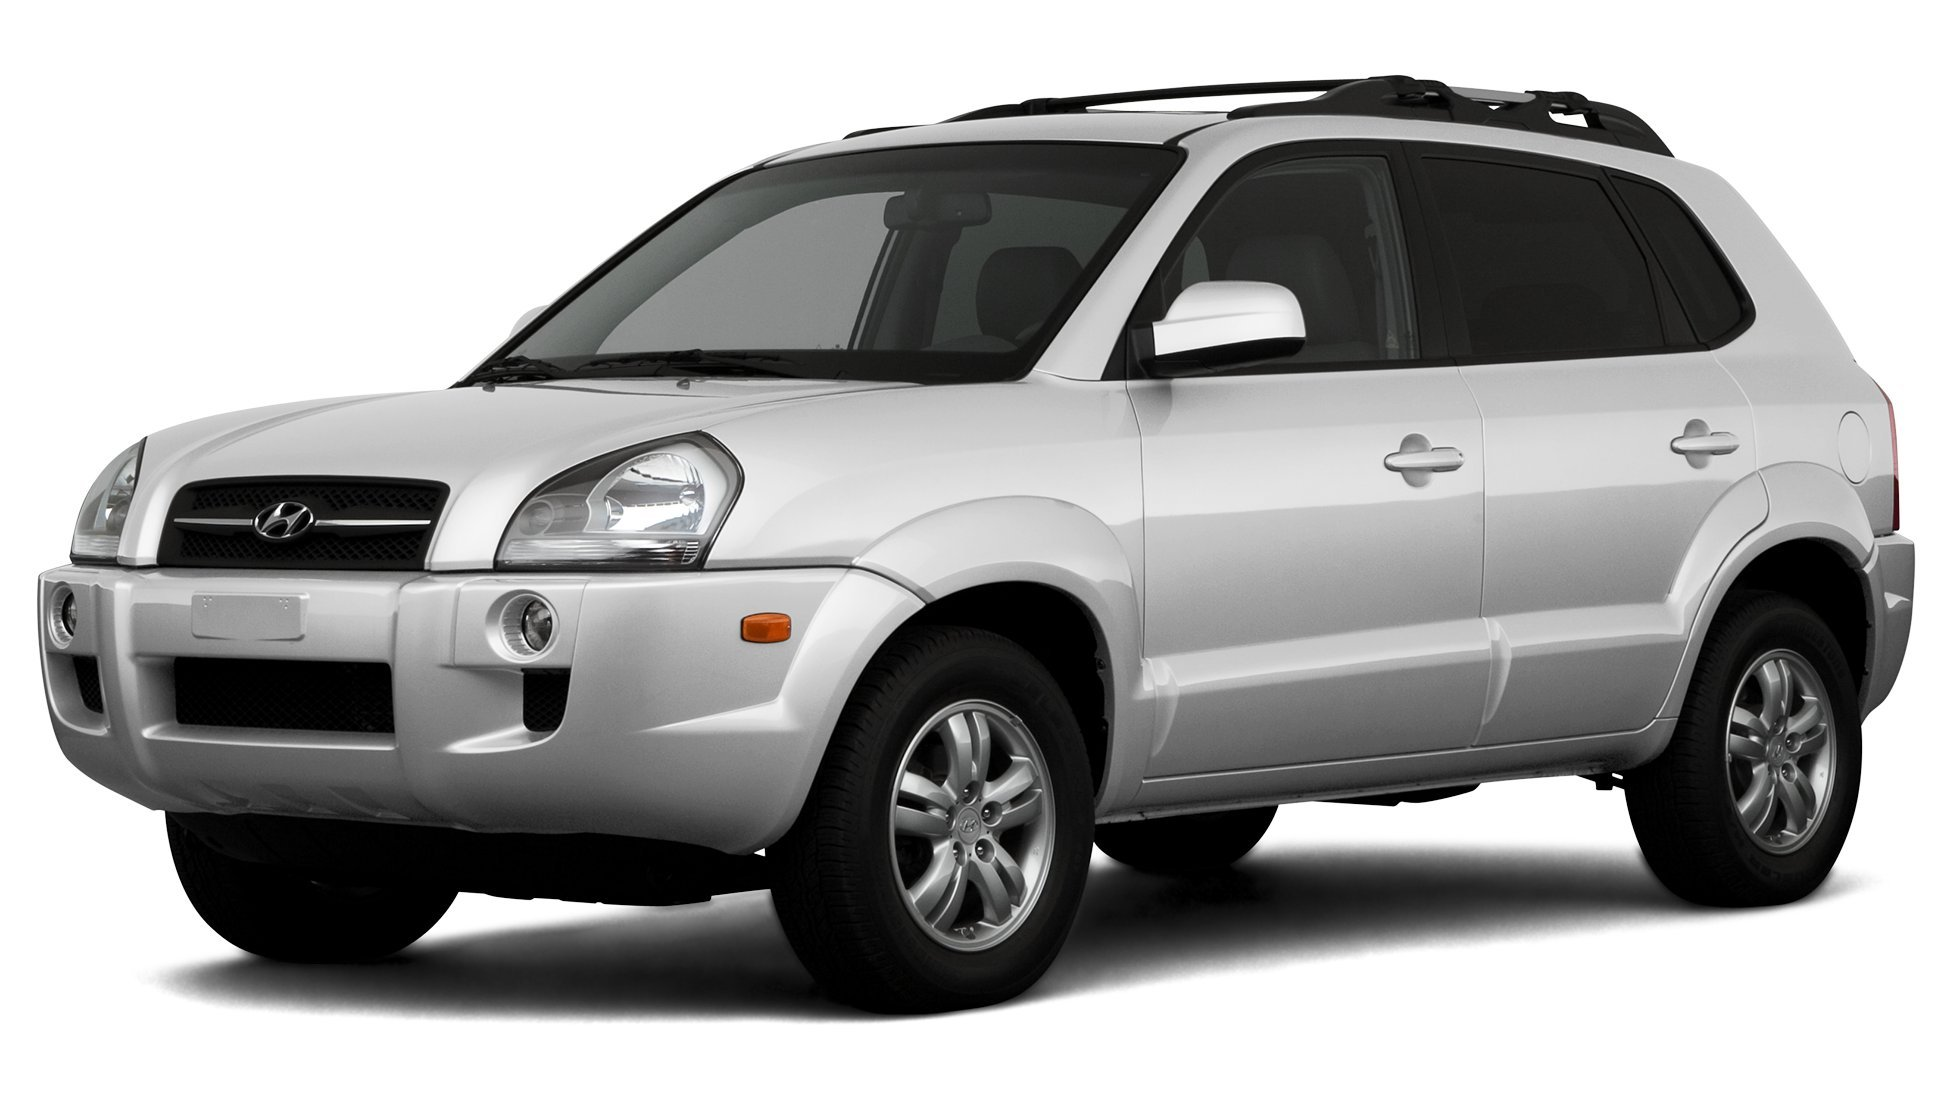 2007 mitsubishi outlander reviews images and. Black Bedroom Furniture Sets. Home Design Ideas